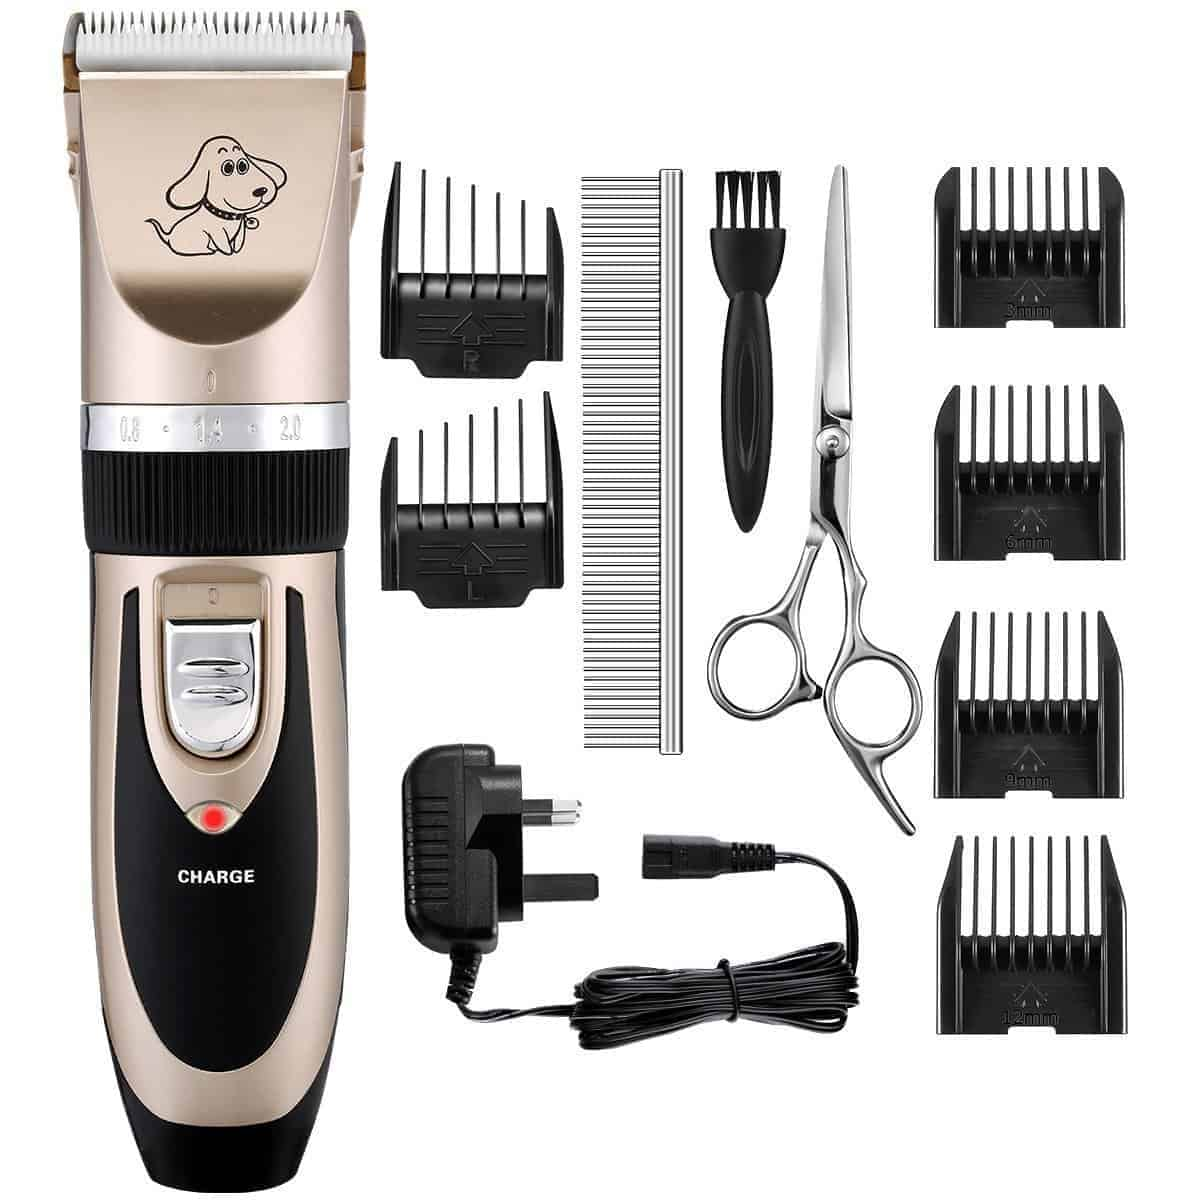 Best Cordless Dog Clippers - OMORC